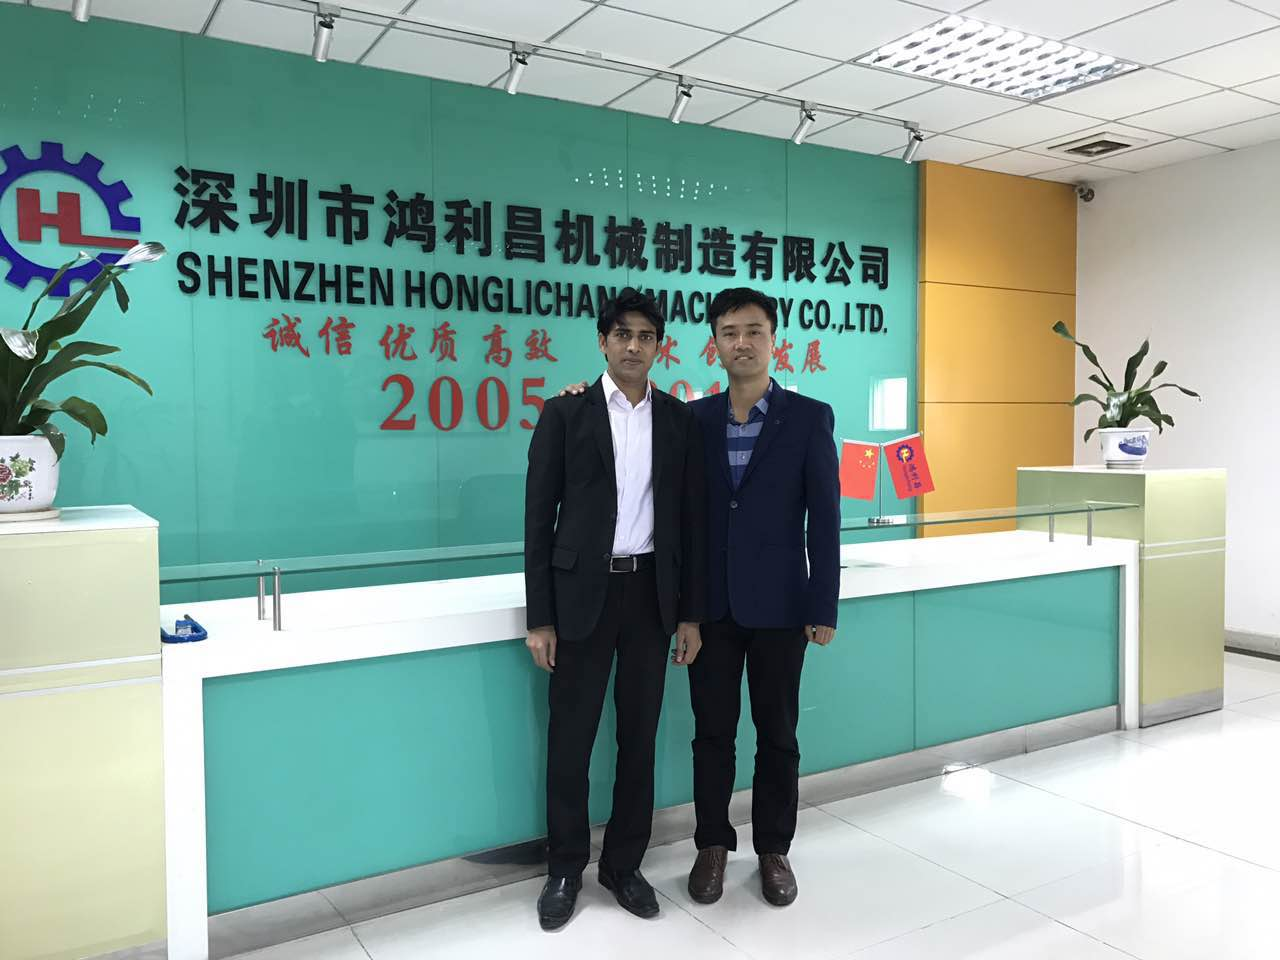 India Customer Visit Our Company (Jan.12, 2016)